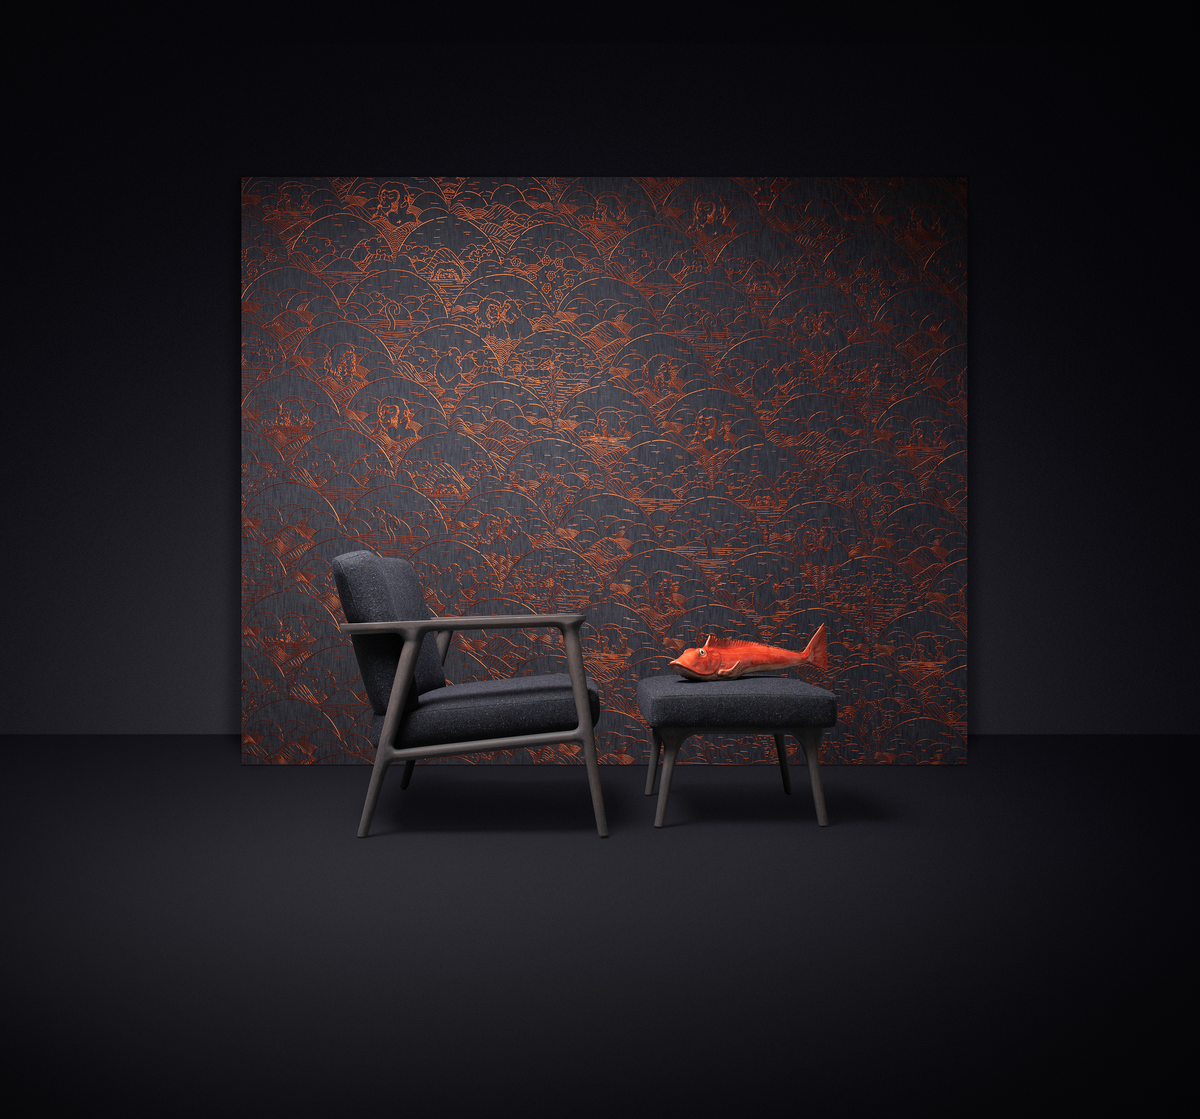 Poetic composition Zio Lounge Chair, Zio Footstool and Moooi Wallcovering Tokyo Blue